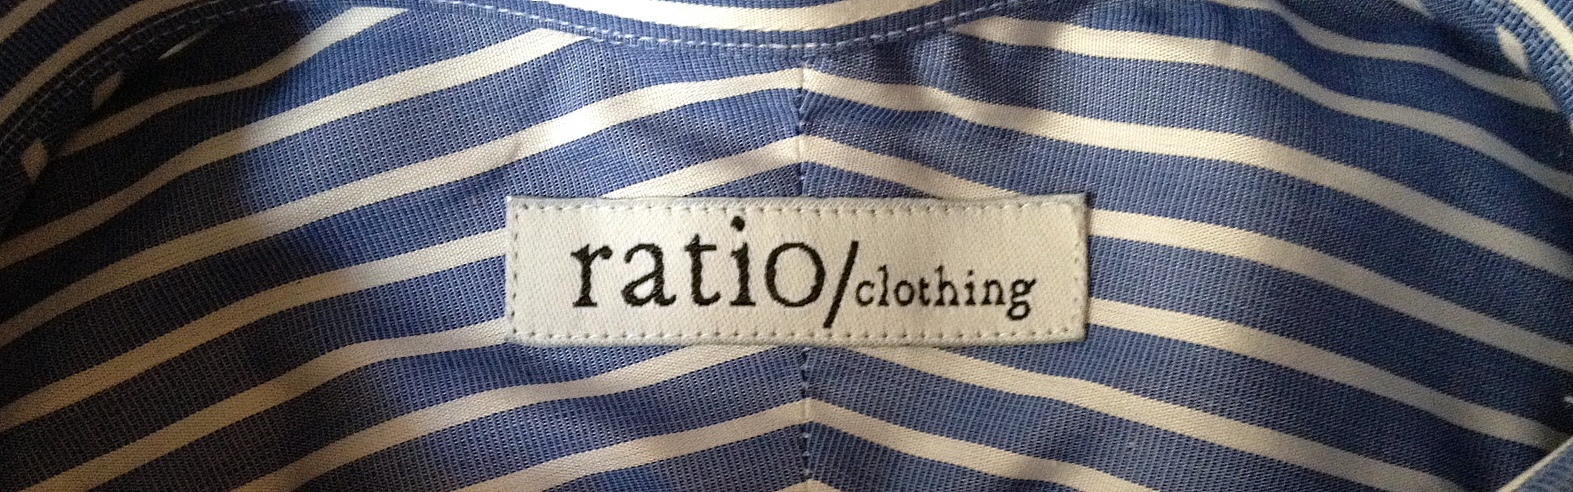 The official store of Ratio Clothing Coupon & Deals offers the best prices on Site and more. This page contains a list of all Ratio Clothing Coupon & Deals Store coupon codes that are available on Ratio Clothing Coupon & Deals store. Save 20% Off on your Ratio Clothing Coupon & Deals purchase with the Ratio Clothing Coupon & Deals coupons/5(60).